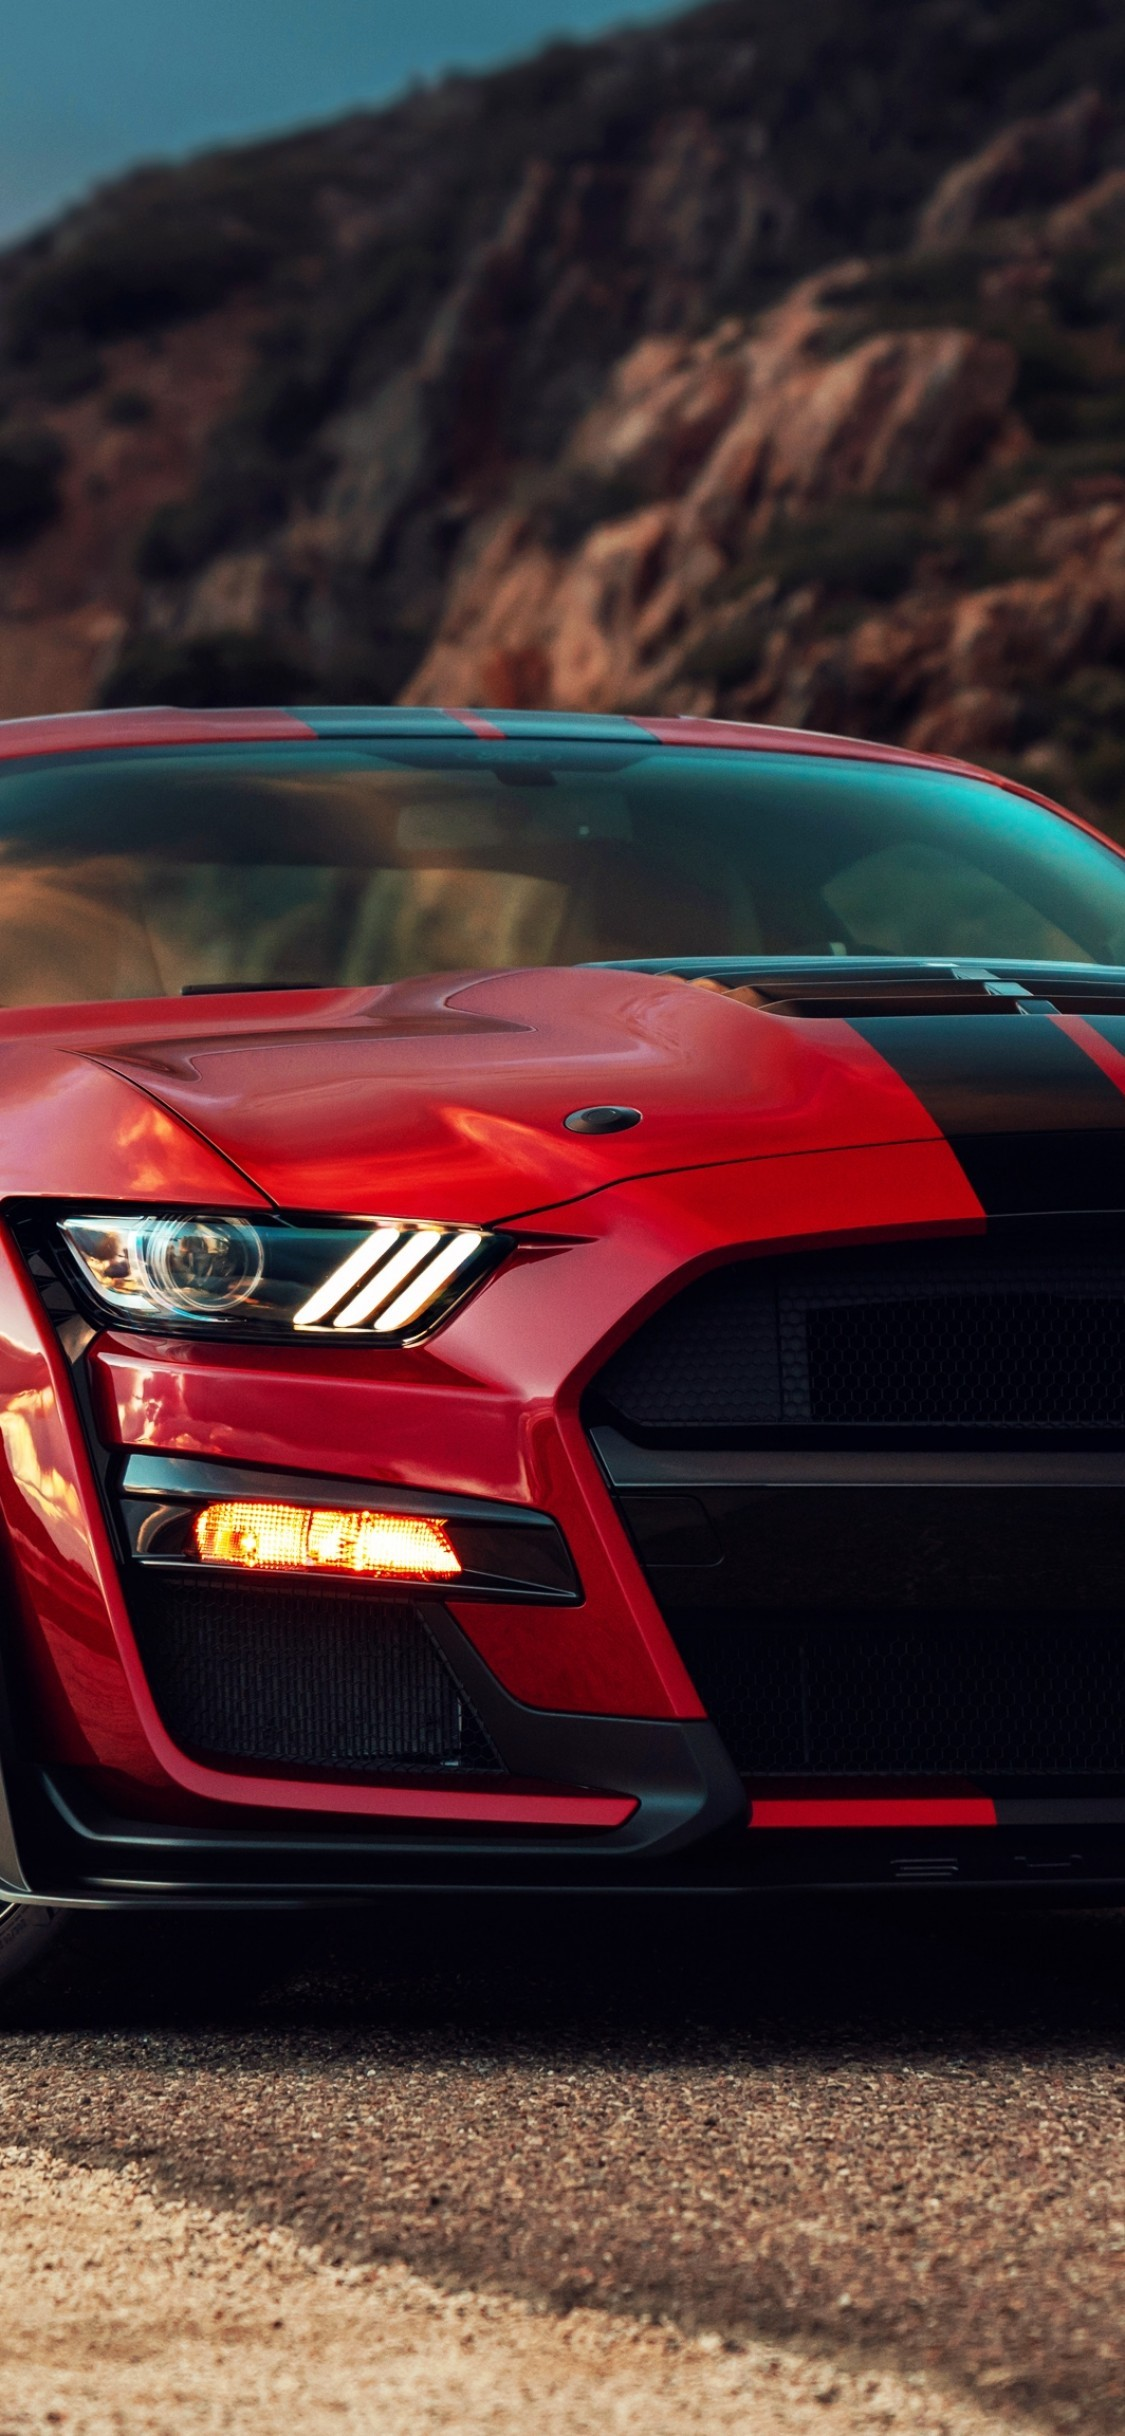 Download 1125x2436 Ford Mustang Shelby Gt500 2020 Red And Black 1125x2436